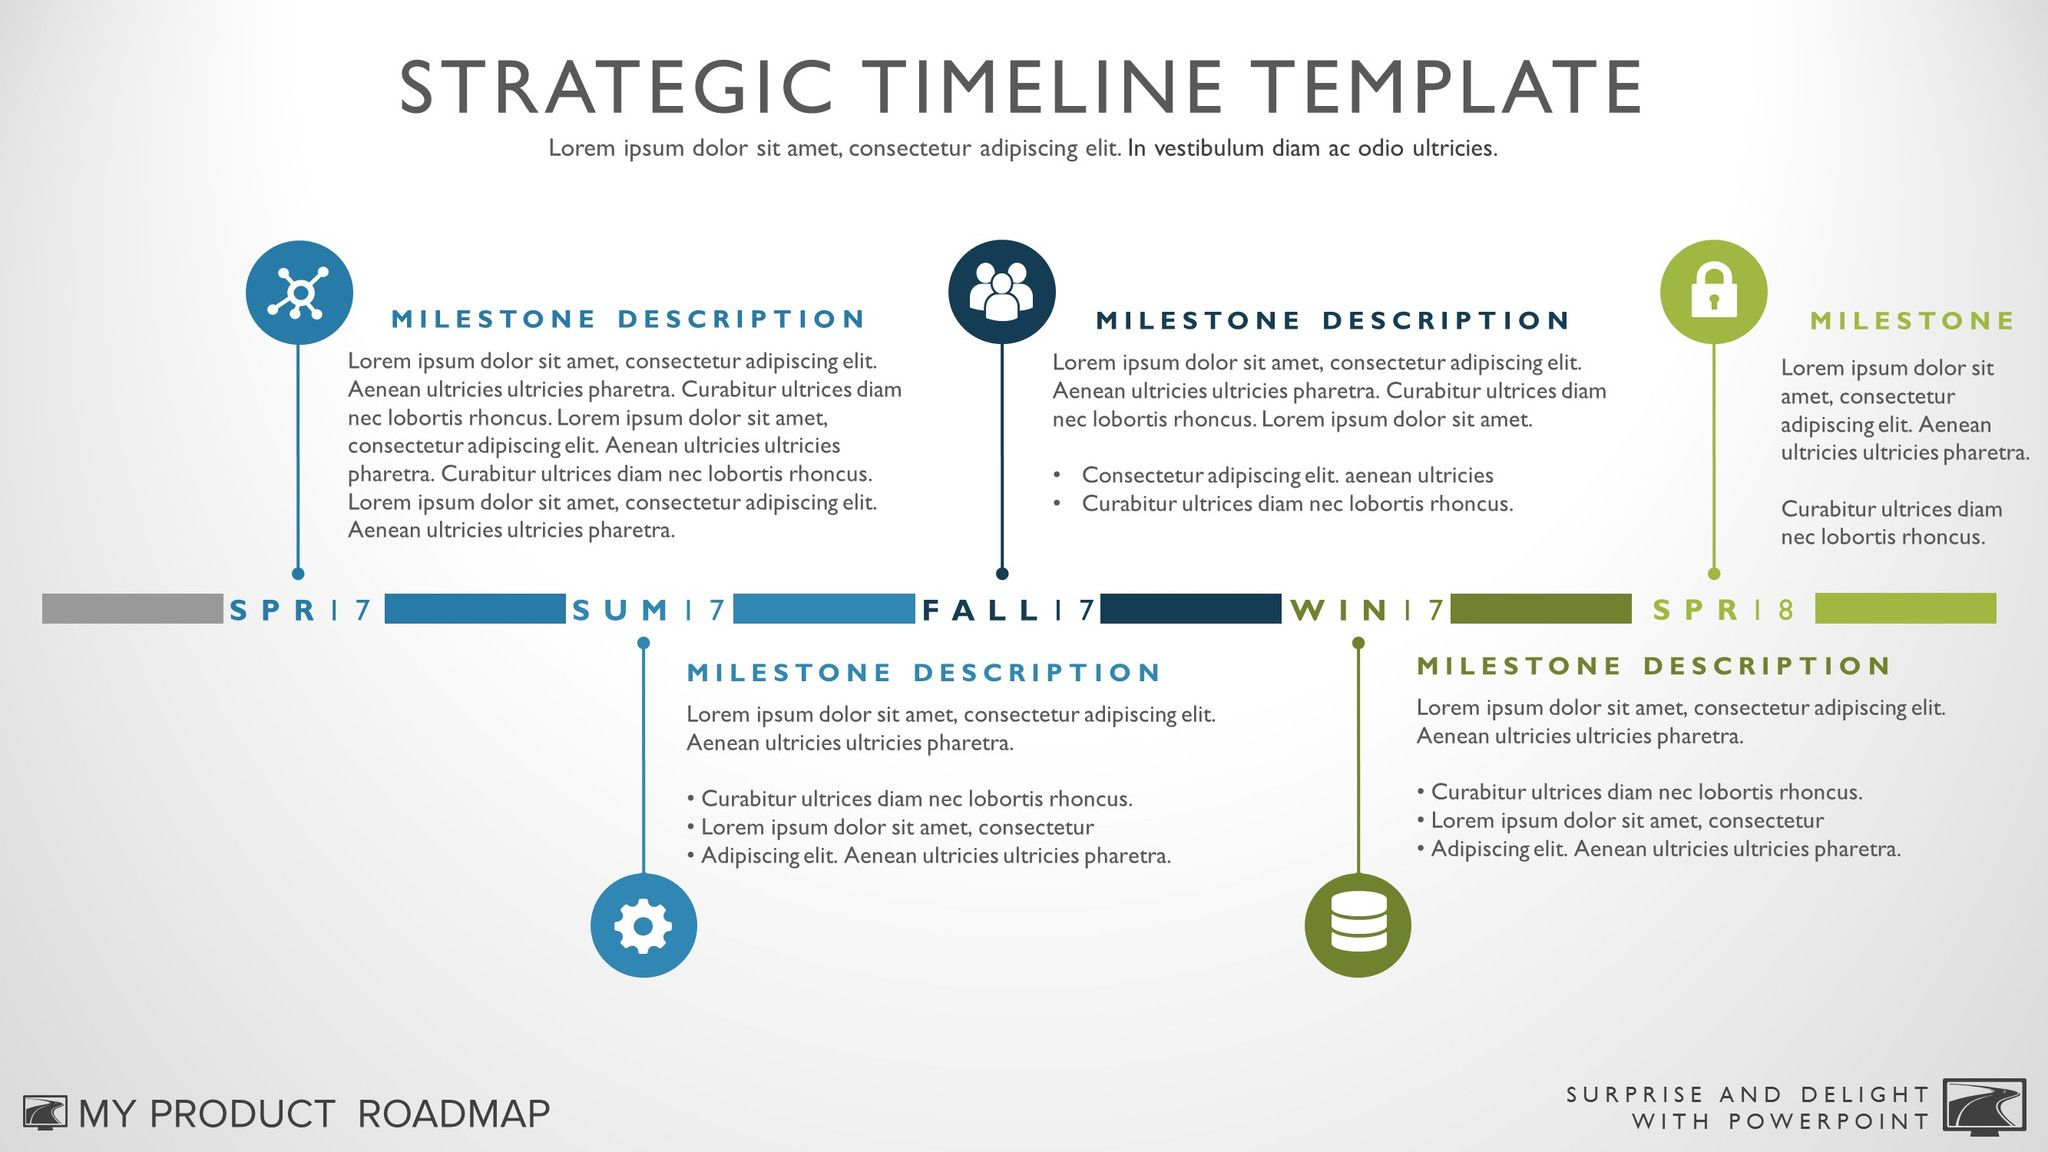 Seven Phase IT Timeline Roadmapping PowerPoint Template Six Phase - Roadmap timeline template ppt